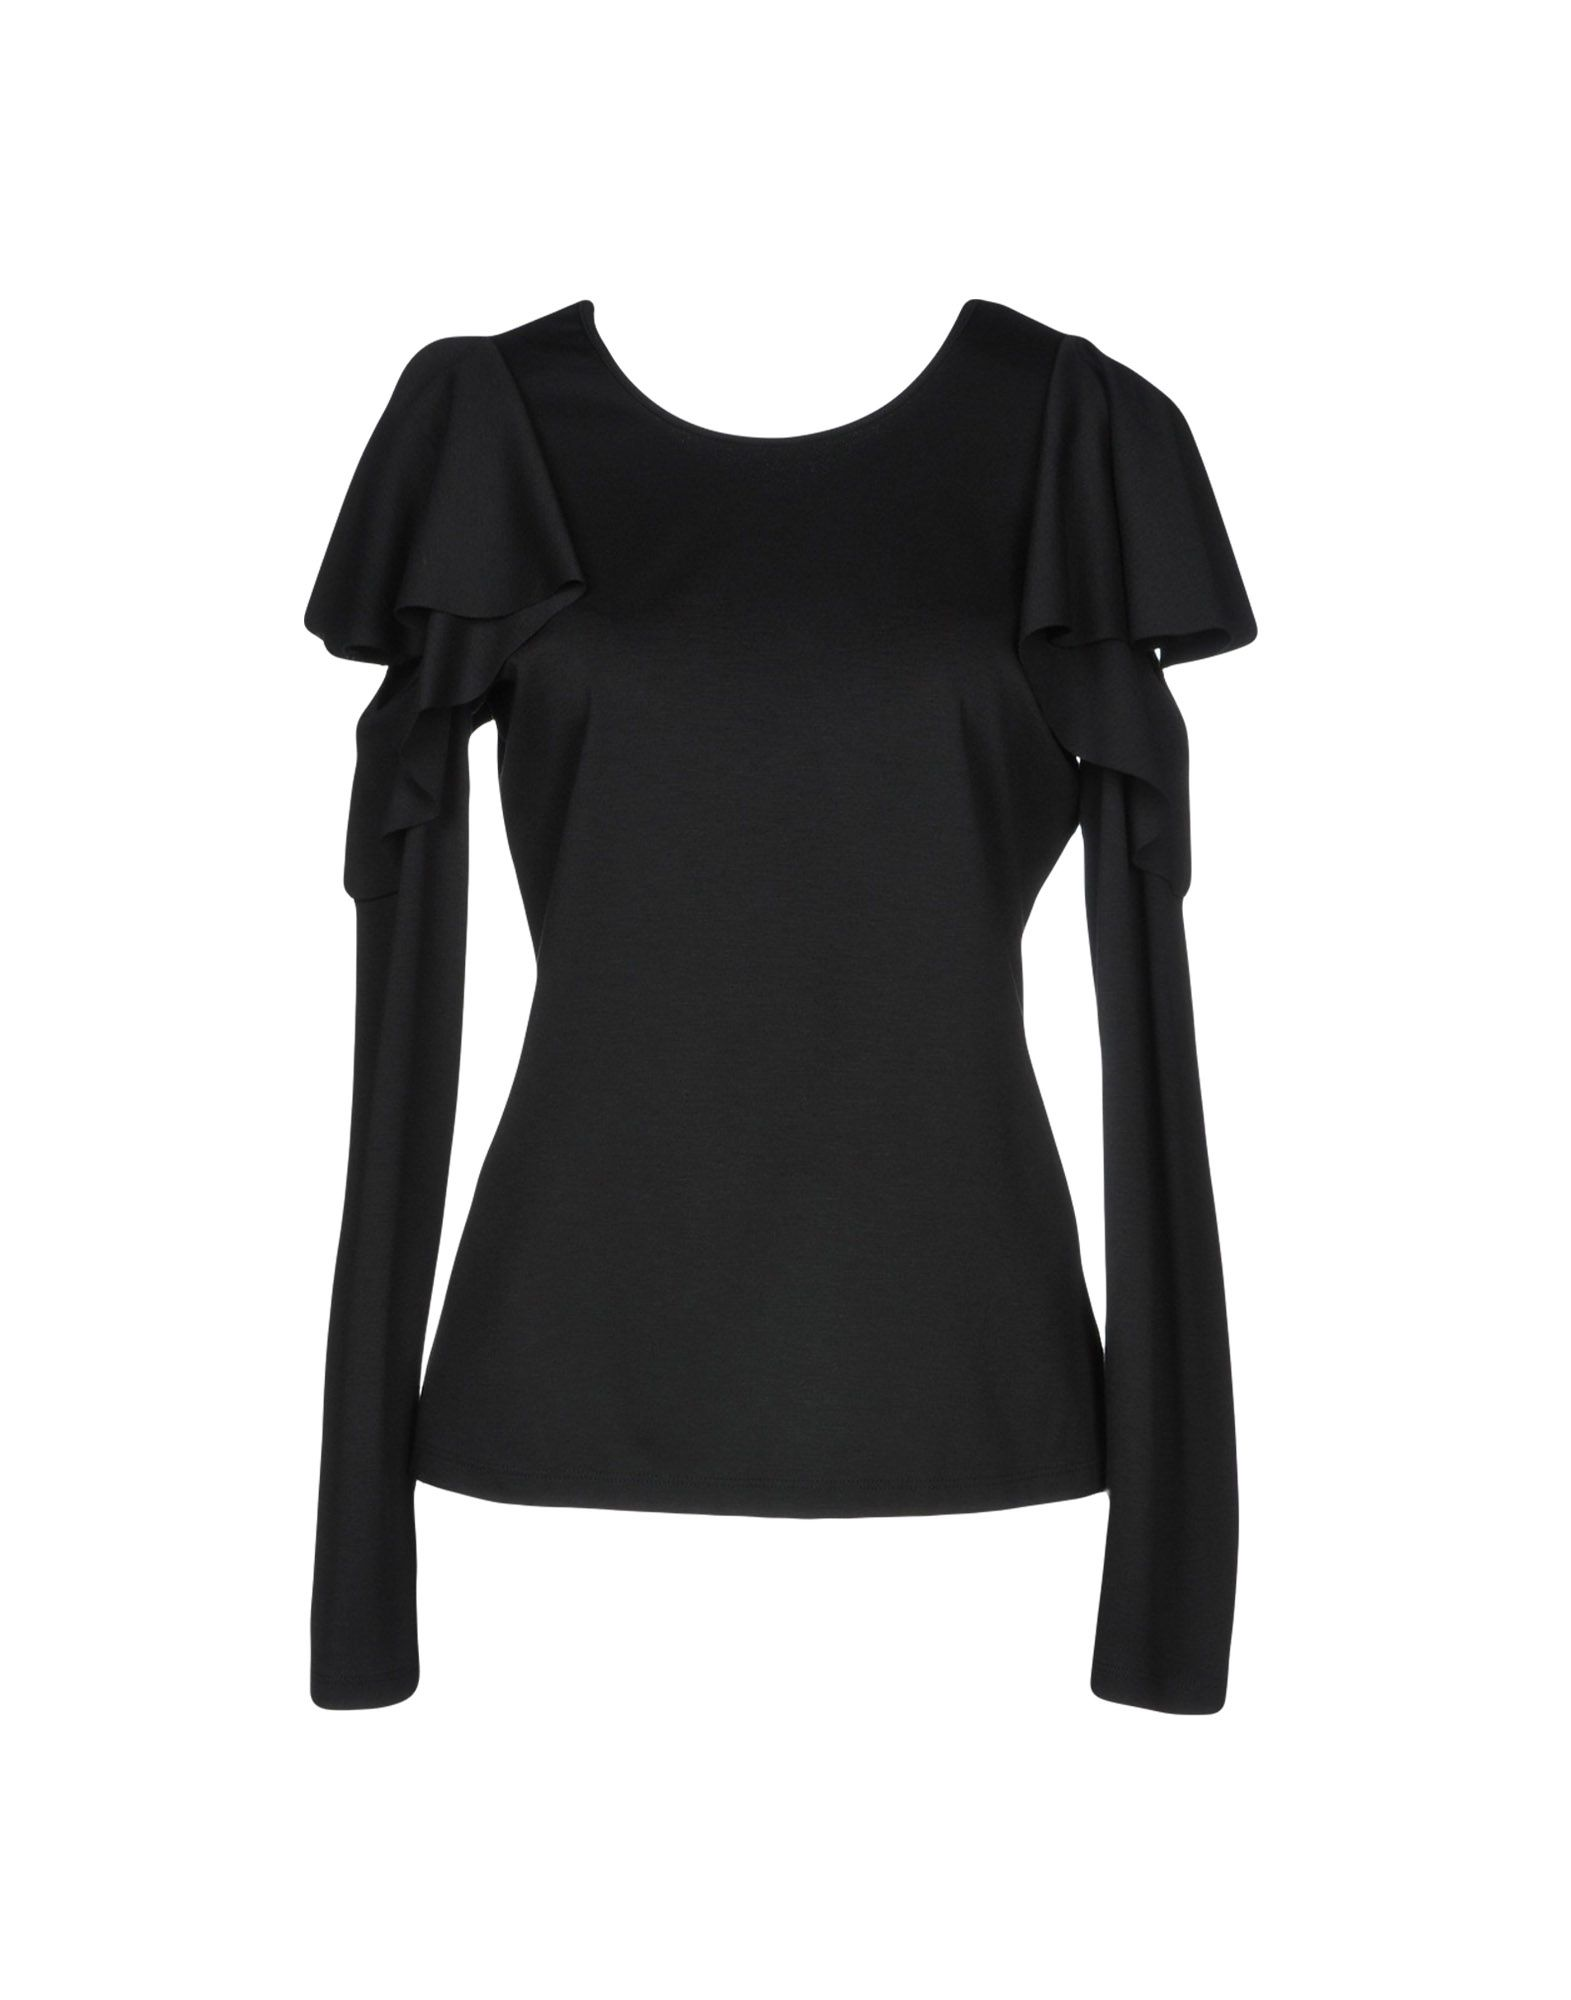 OTTOD'AME T-Shirt in Black